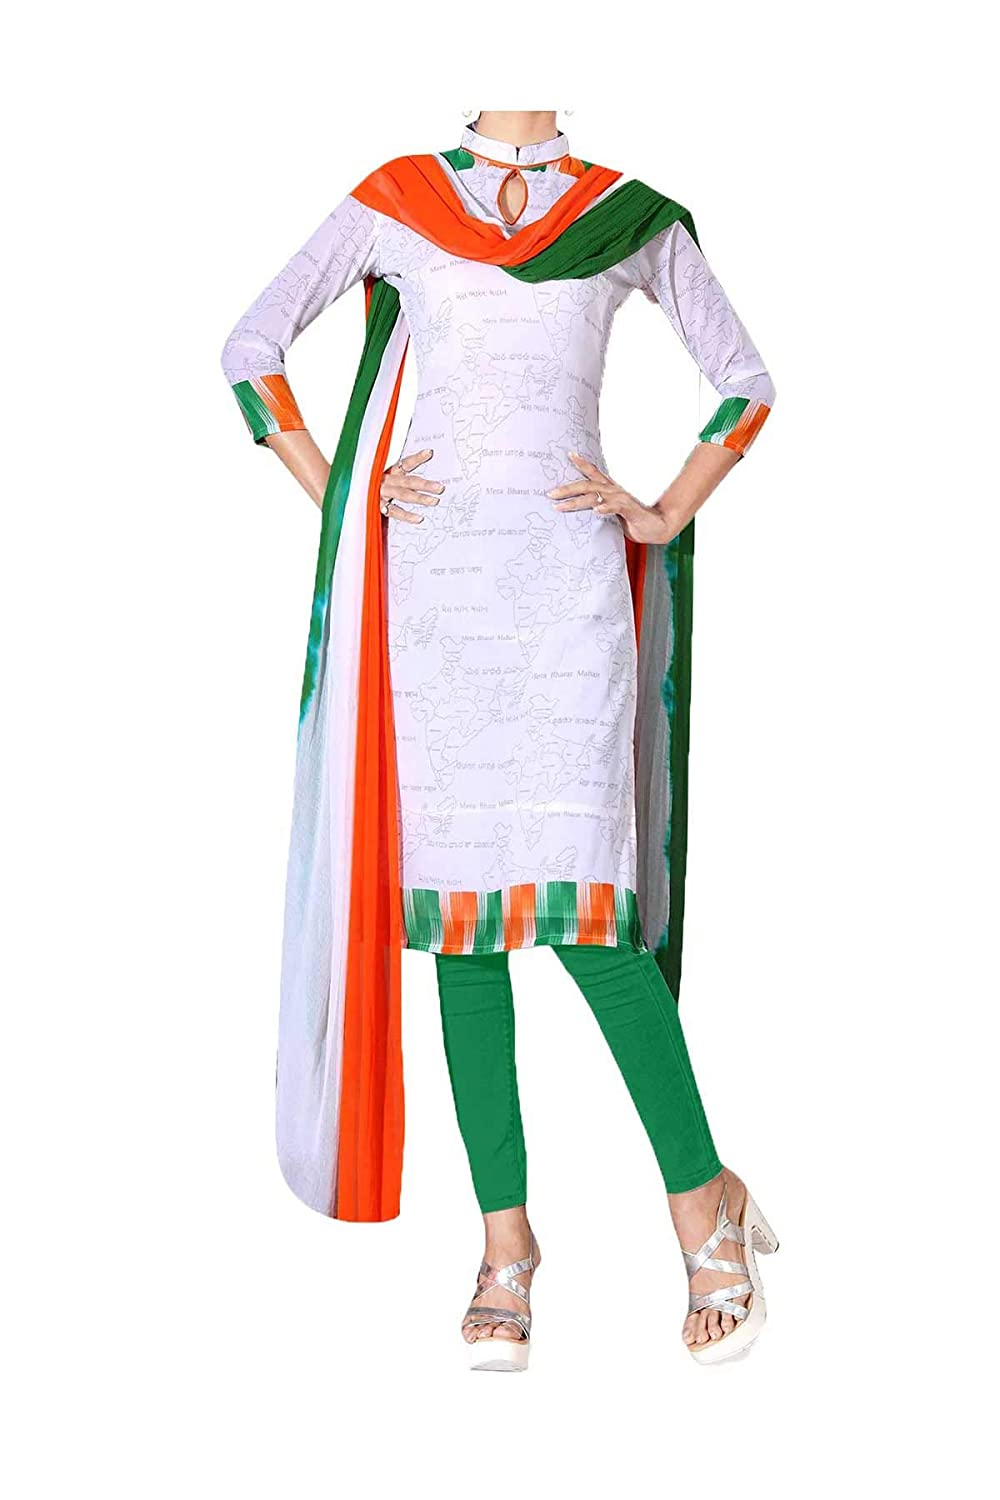 Independence Day Special Dress for Girl in India 2021 Tiranga Dress for Ladies